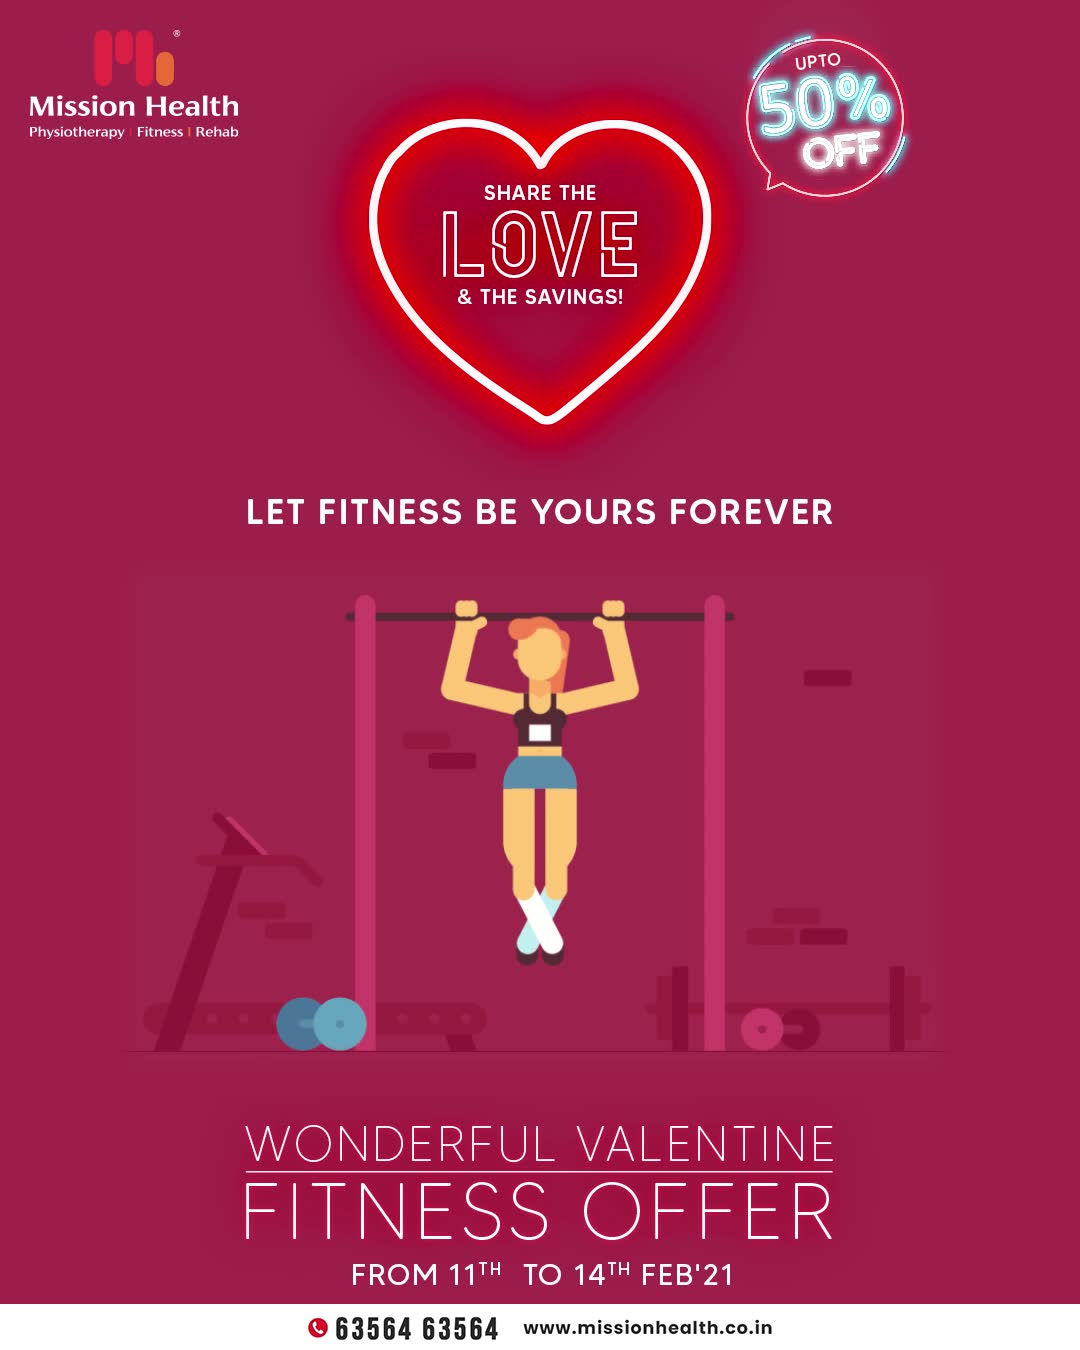 Propose to stay fit for a lifetime and let fitness be yours forever!  Be in love with yourself and understand the importance of fitness. Even if ever you feel unmotivated and wish to give up on your health goals then think of the perks that a fit life will offer you.  Stop delaying anymore and elevate the dimensions of self-love in the month of love. Fall for consistency and make fitness your companion with the Wonderful Valentine Fitness Offer.   Mission Health Helpline Number: +916356463564 www.missionhealth.co.in  #ValentineFitnessOffer #FitnessisFirstLove #MissionHealth #Fitness #PersonalTraining #FatToFit #Transform #GroupFitness #Slimming #MovementIsLife